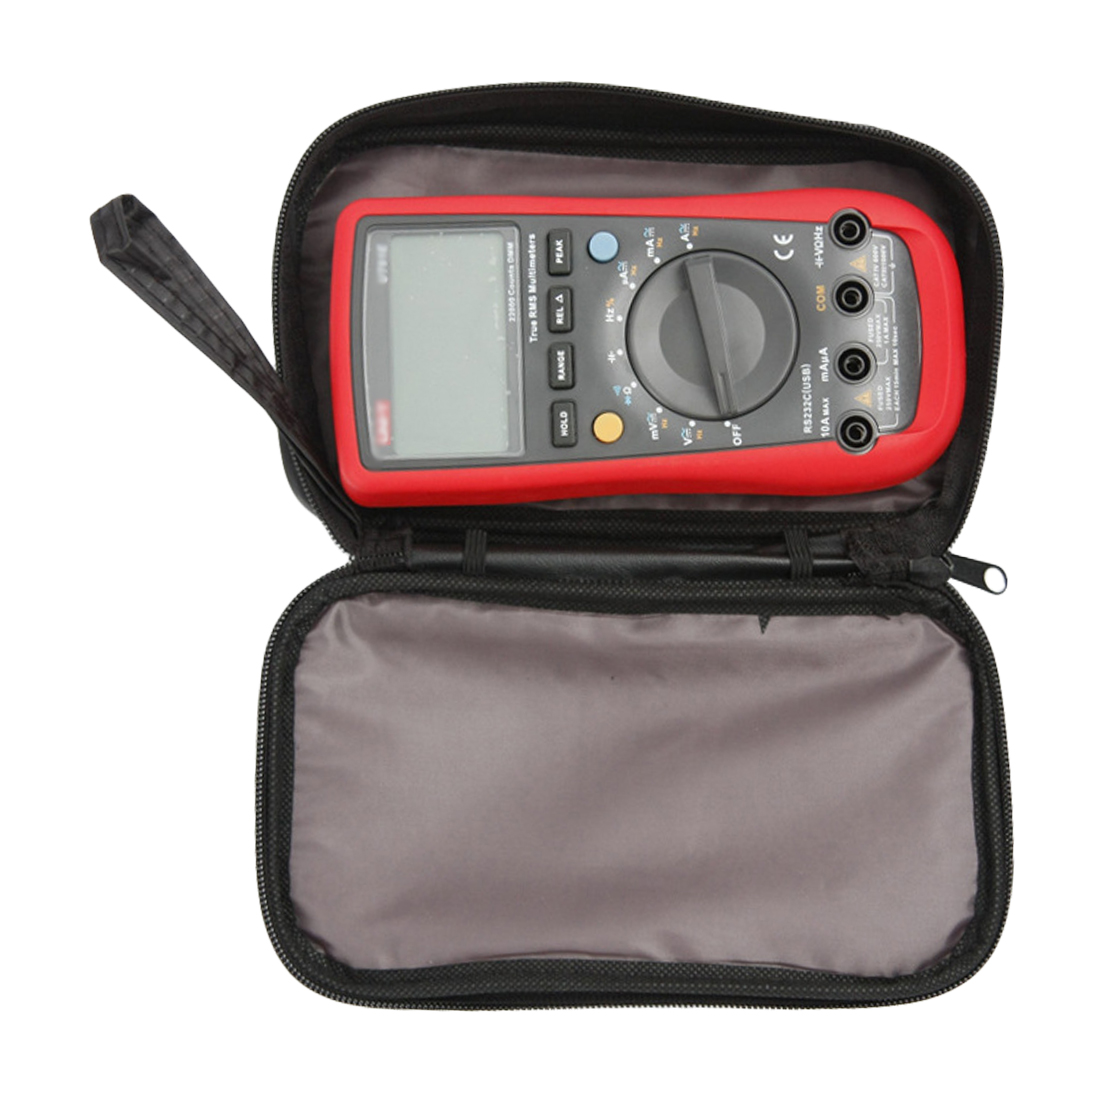 Digital Multimeter Cloth Durable Waterproof Tools Bag Multimeter Black Canvas Bag 20*12*4cm For UT61 Series